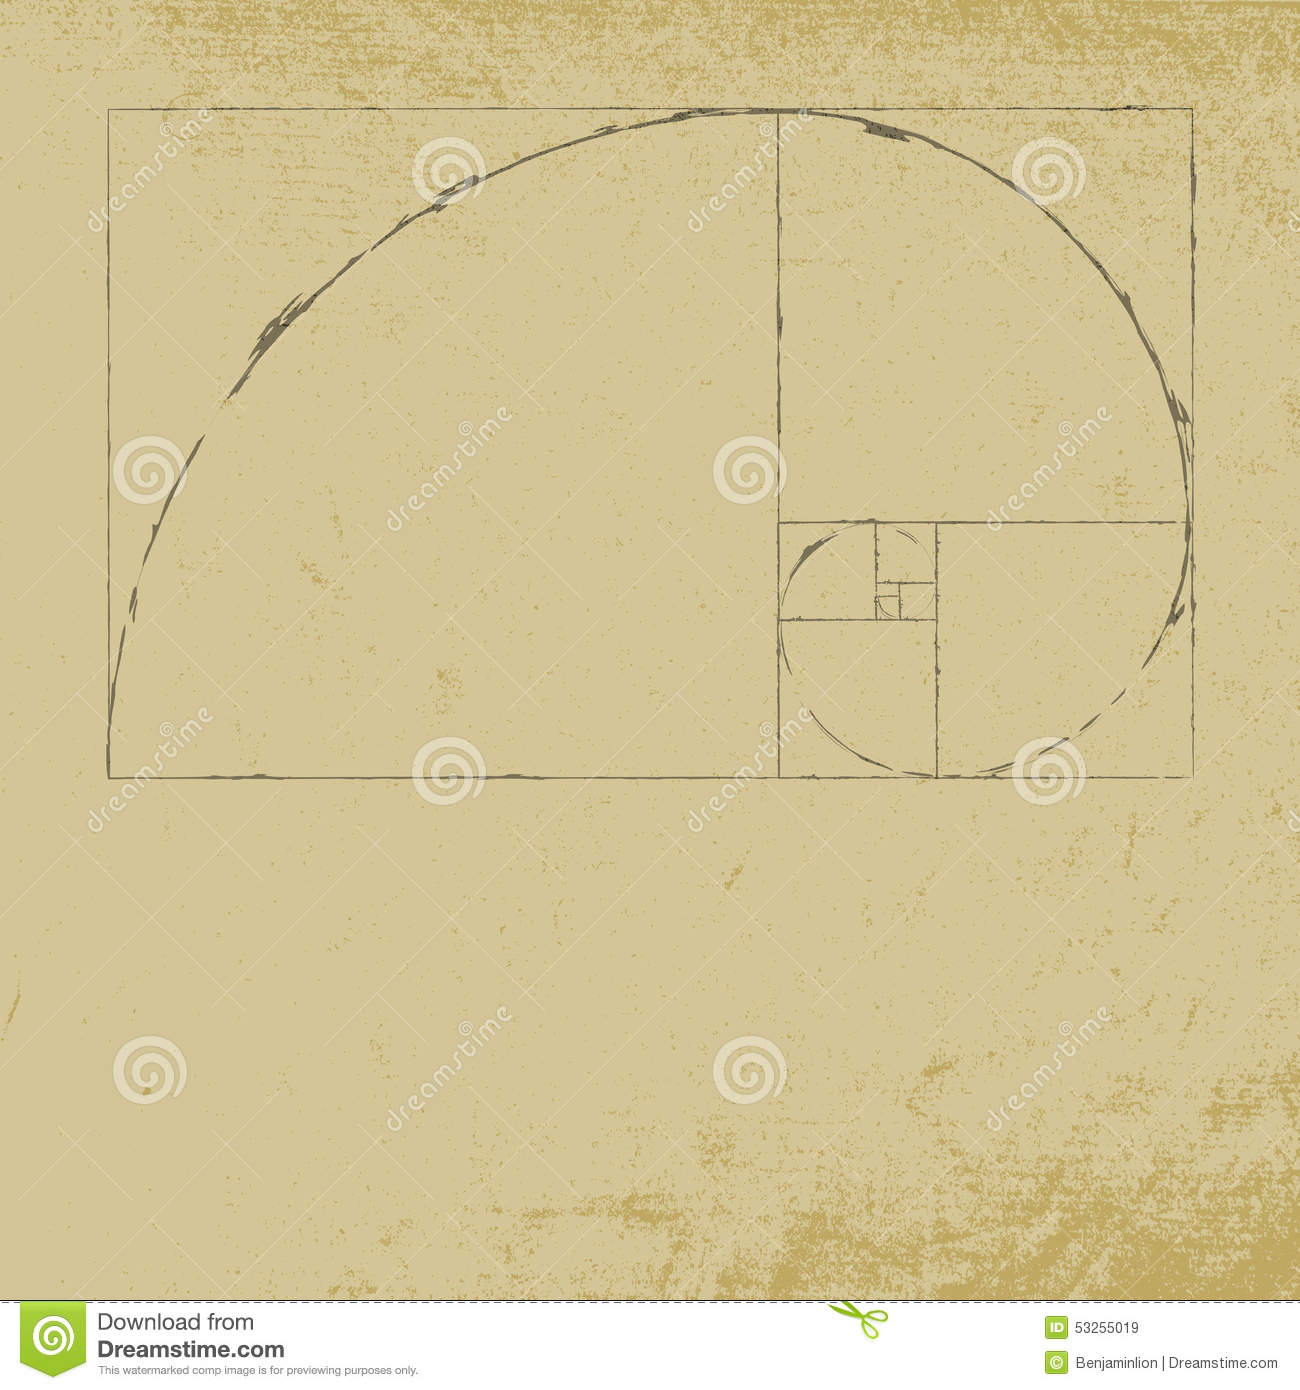 the golden ratio essay Home essays the use of phi, golden numbers and fibonacci numbers in   the golden ratio and the fibonacci spiral had been major factors involved with.